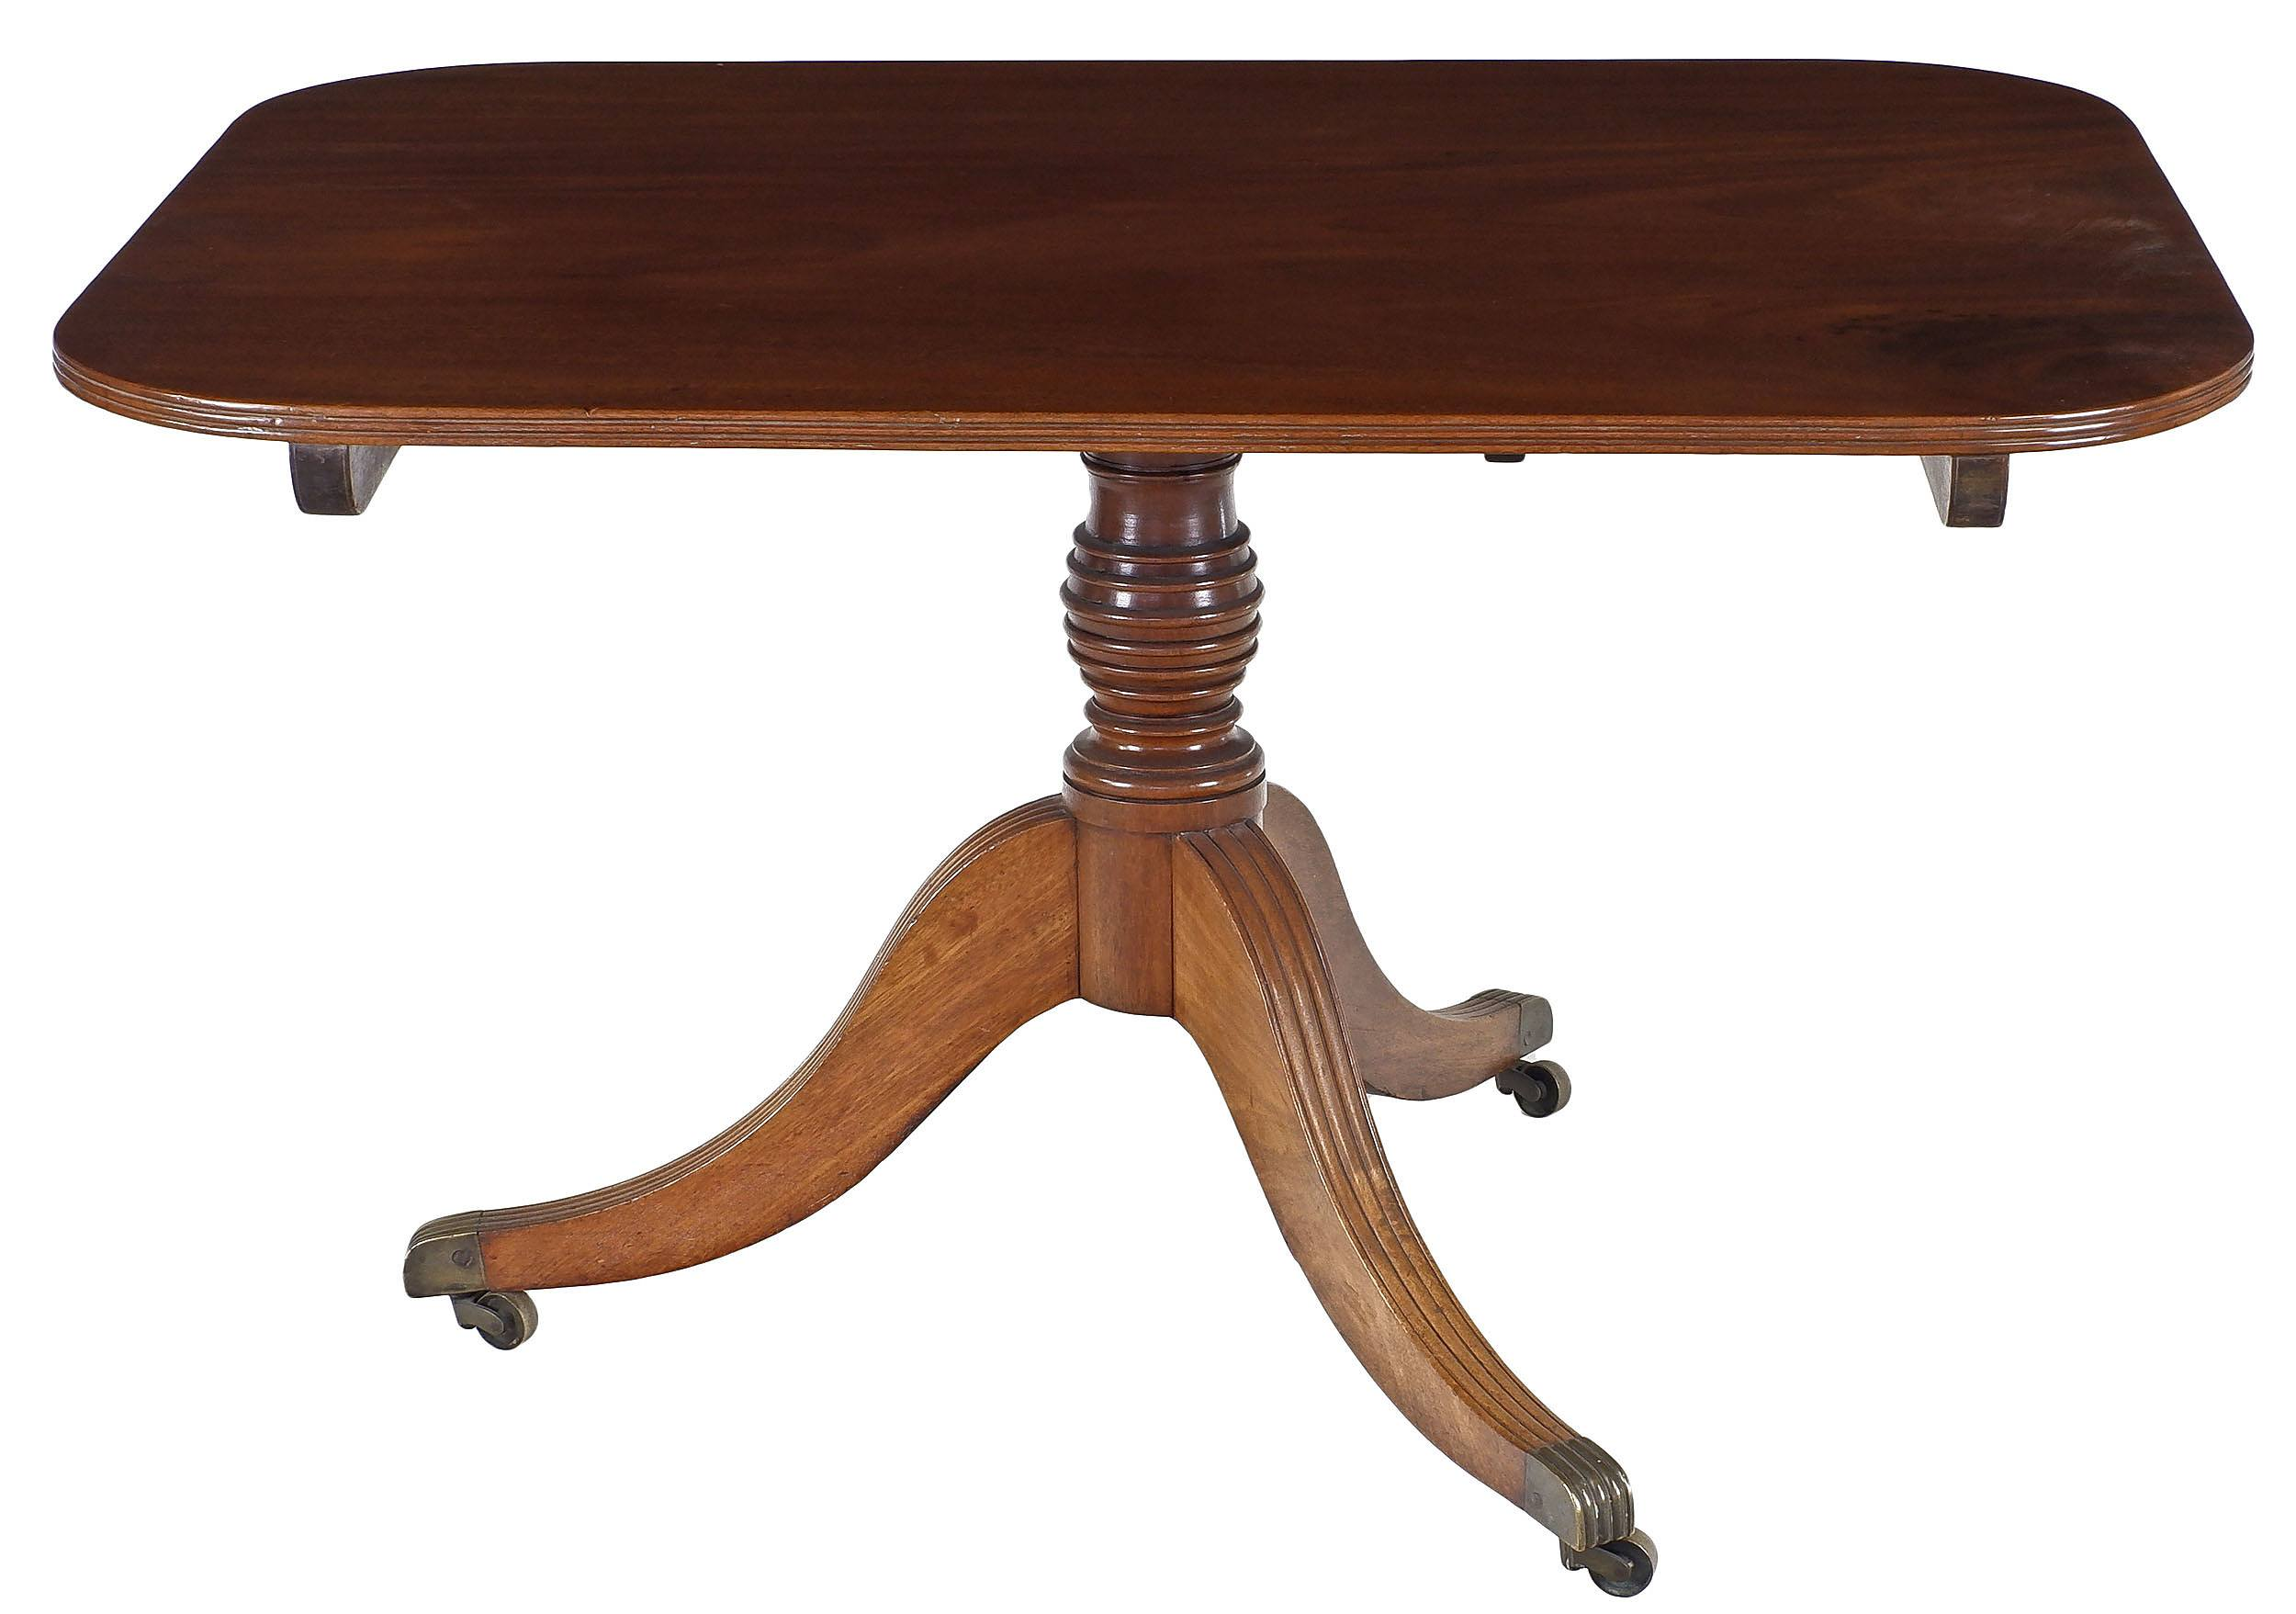 'Regency Mahogany Tilt-Top Breakfast Table of Small Proportions Circa 1820'